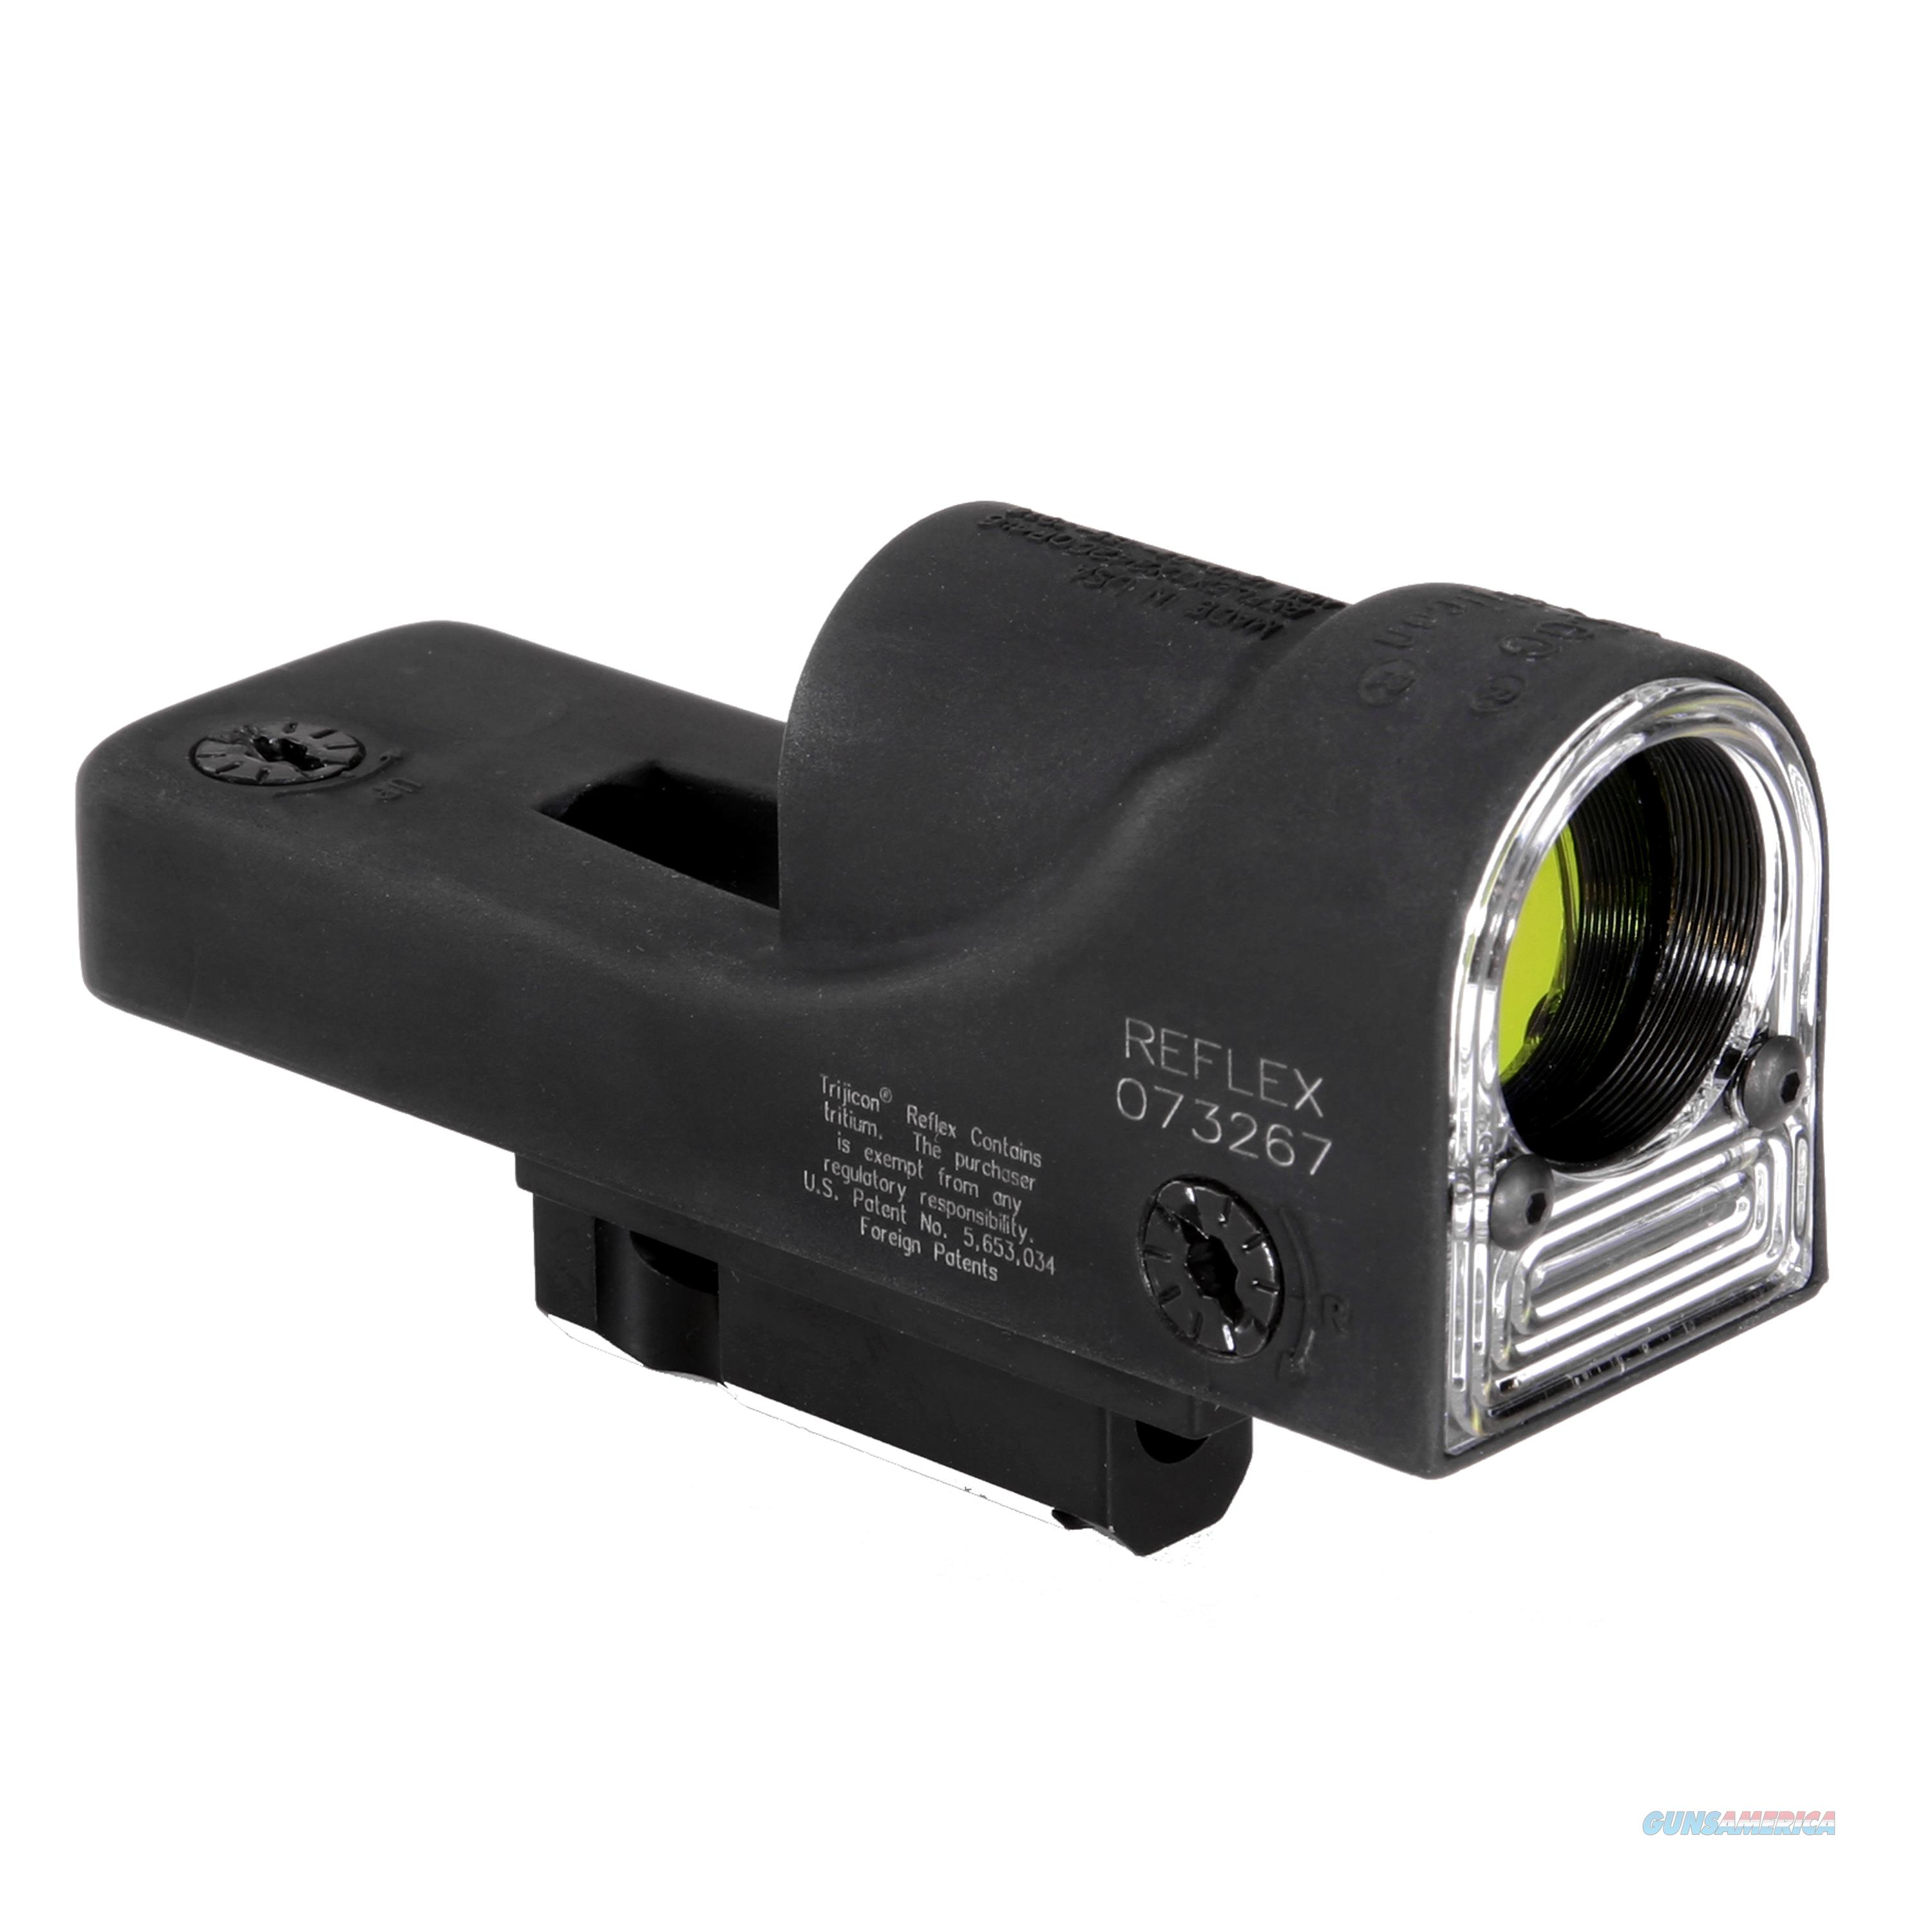 Trijicon Reflex 1X24mm Sight RX01-25  Non-Guns > Iron/Metal/Peep Sights